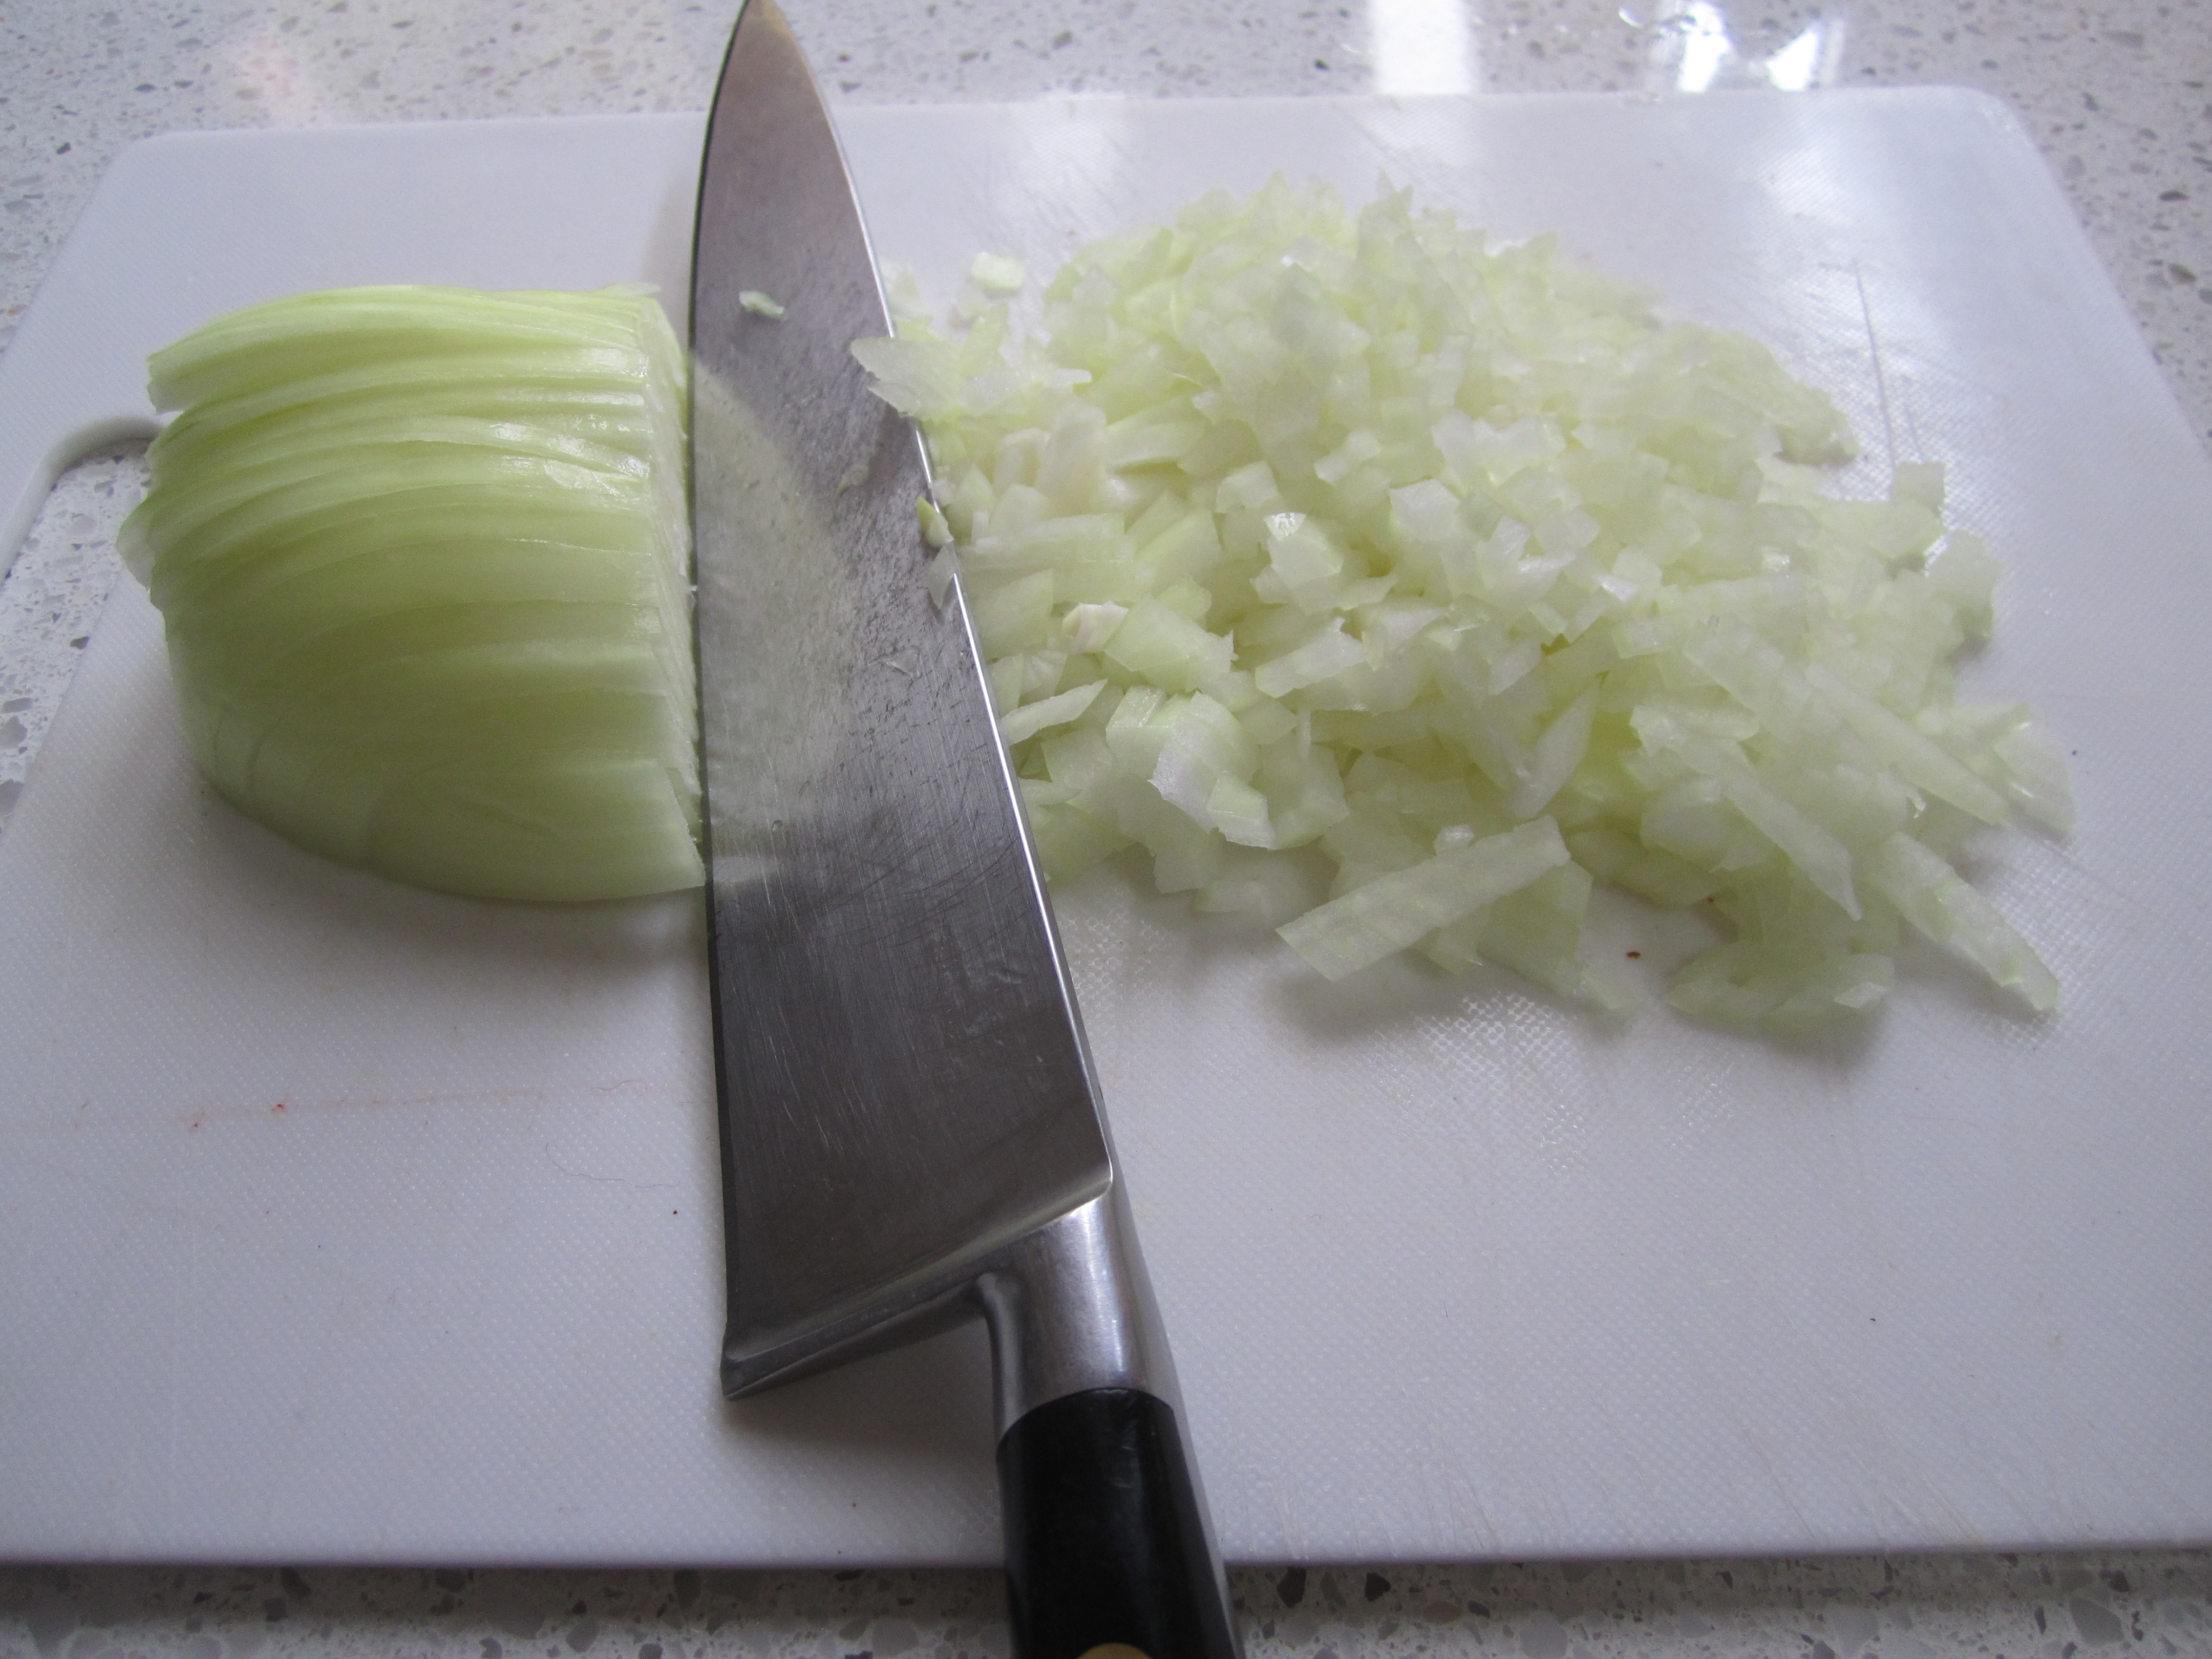 Picture of Prepare Ingredients